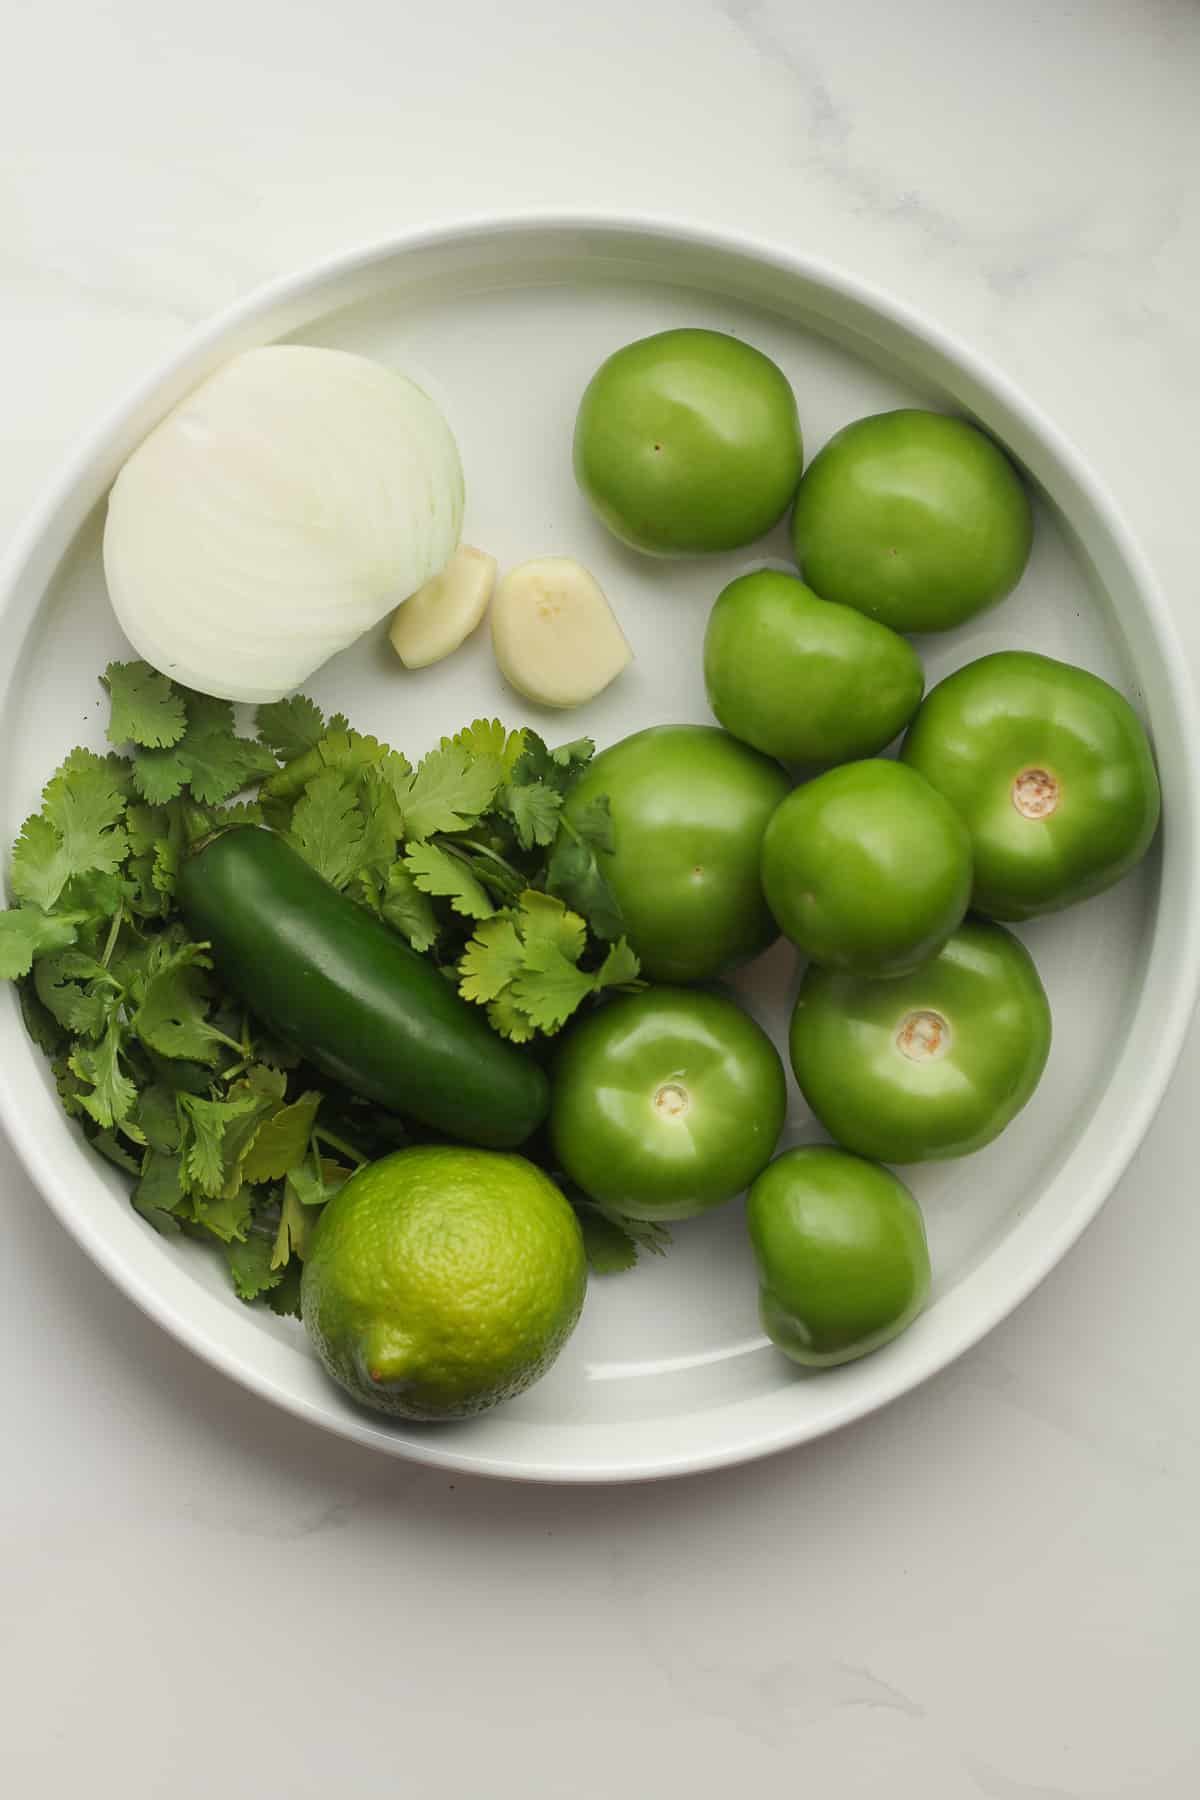 A tray of the ingredients for salsa verde.